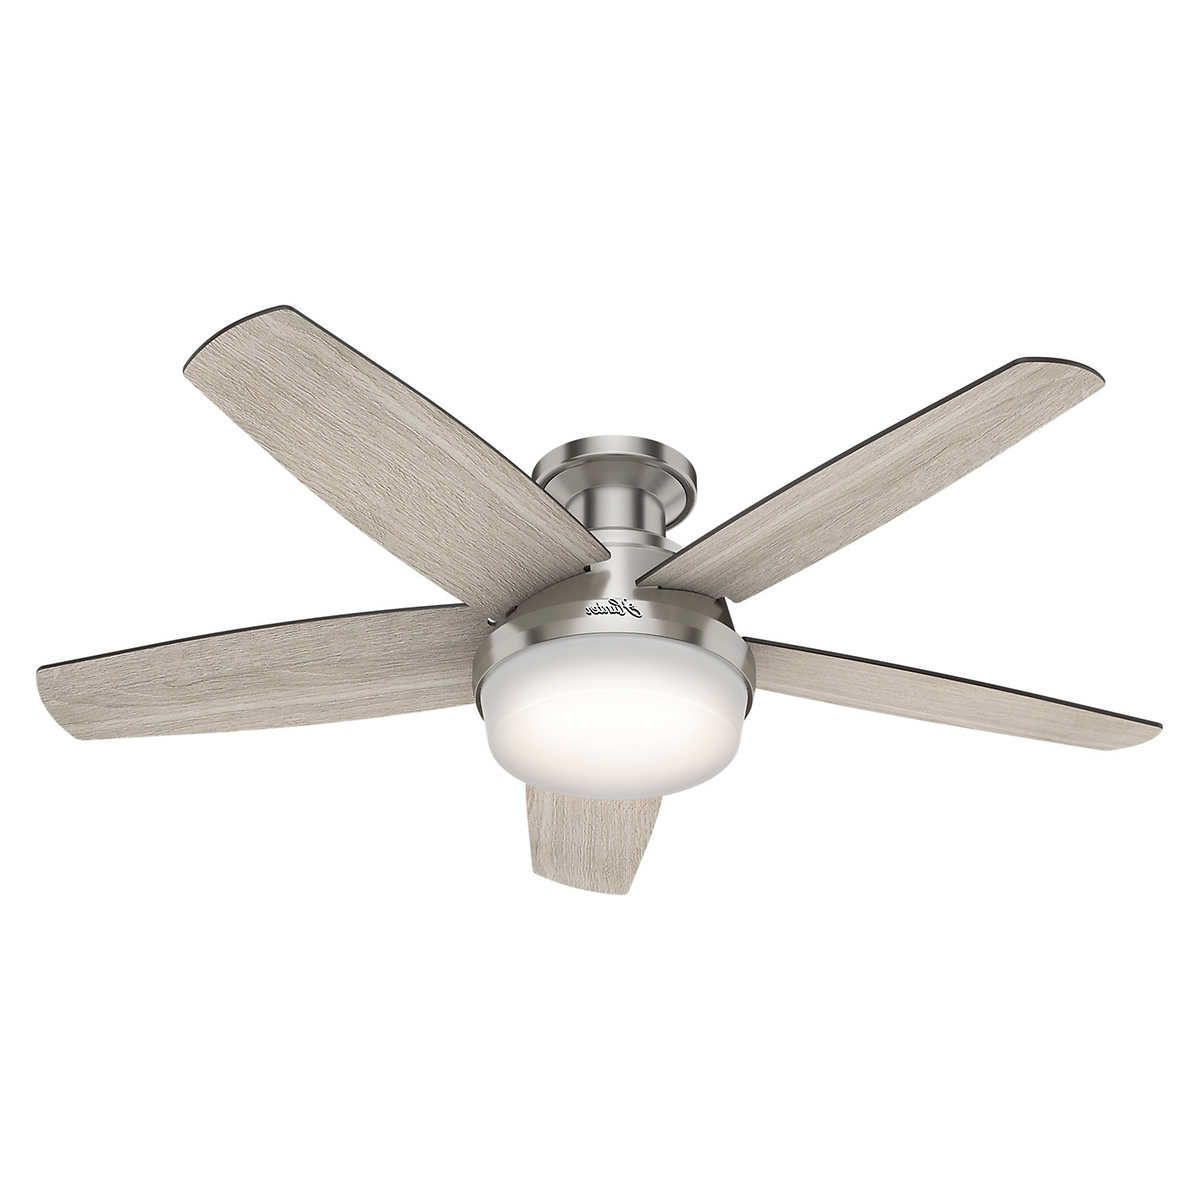 Ceiling In Most Current Newsome Low Profile 5 Blade Ceiling Fans (View 10 of 20)